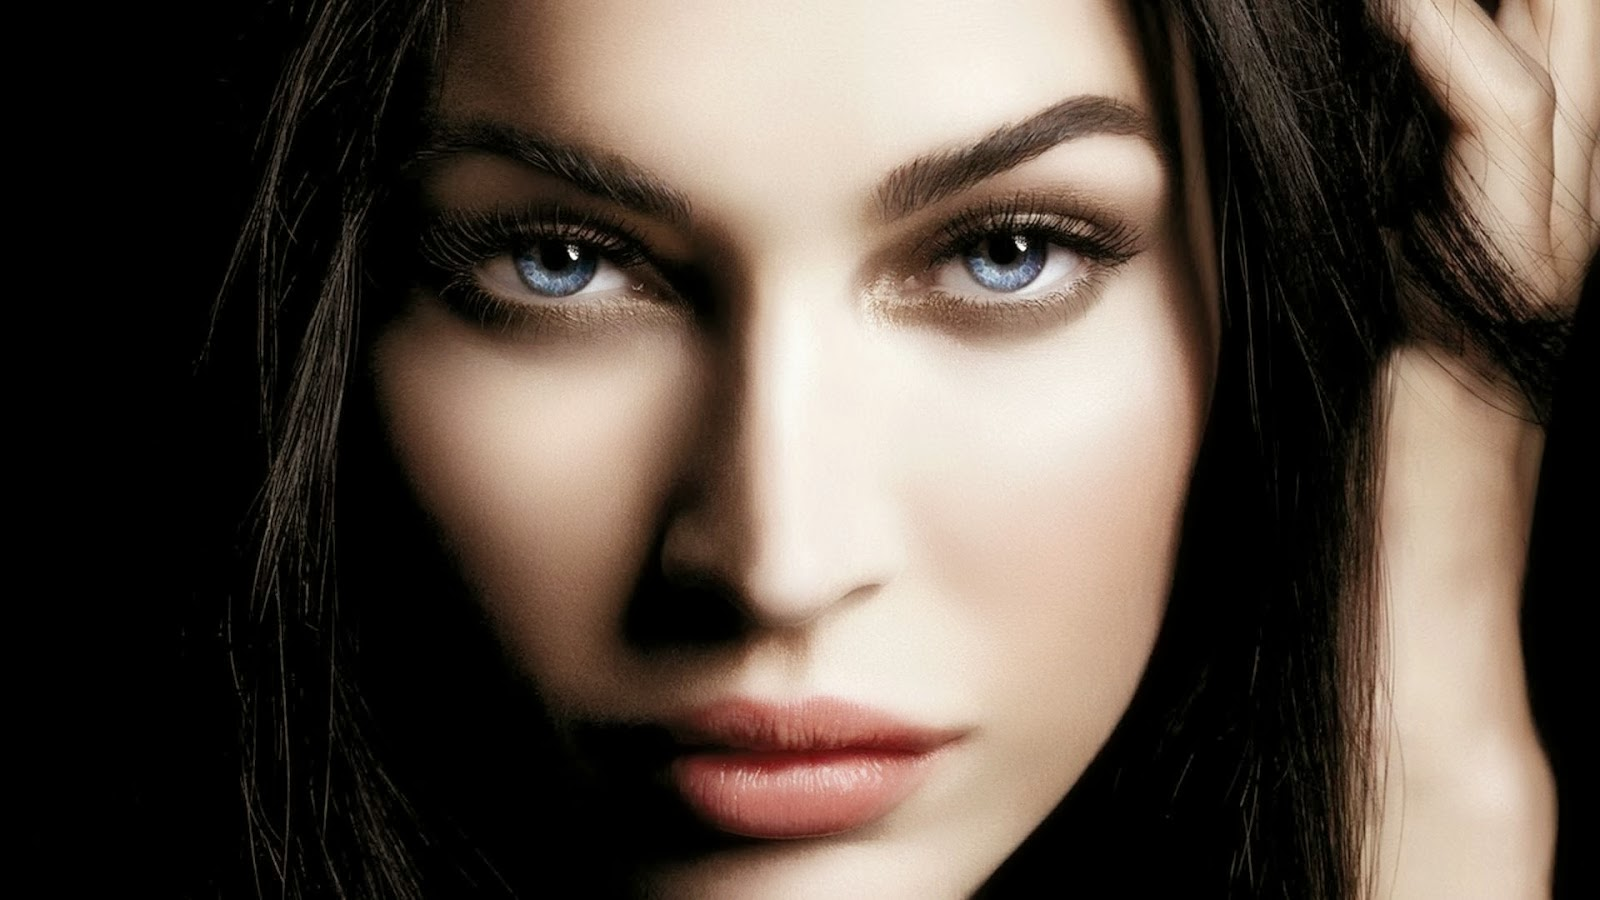 in 1080p megan fox hd wallpapers in 1080p megan fox hd wallpapers in 1600x900